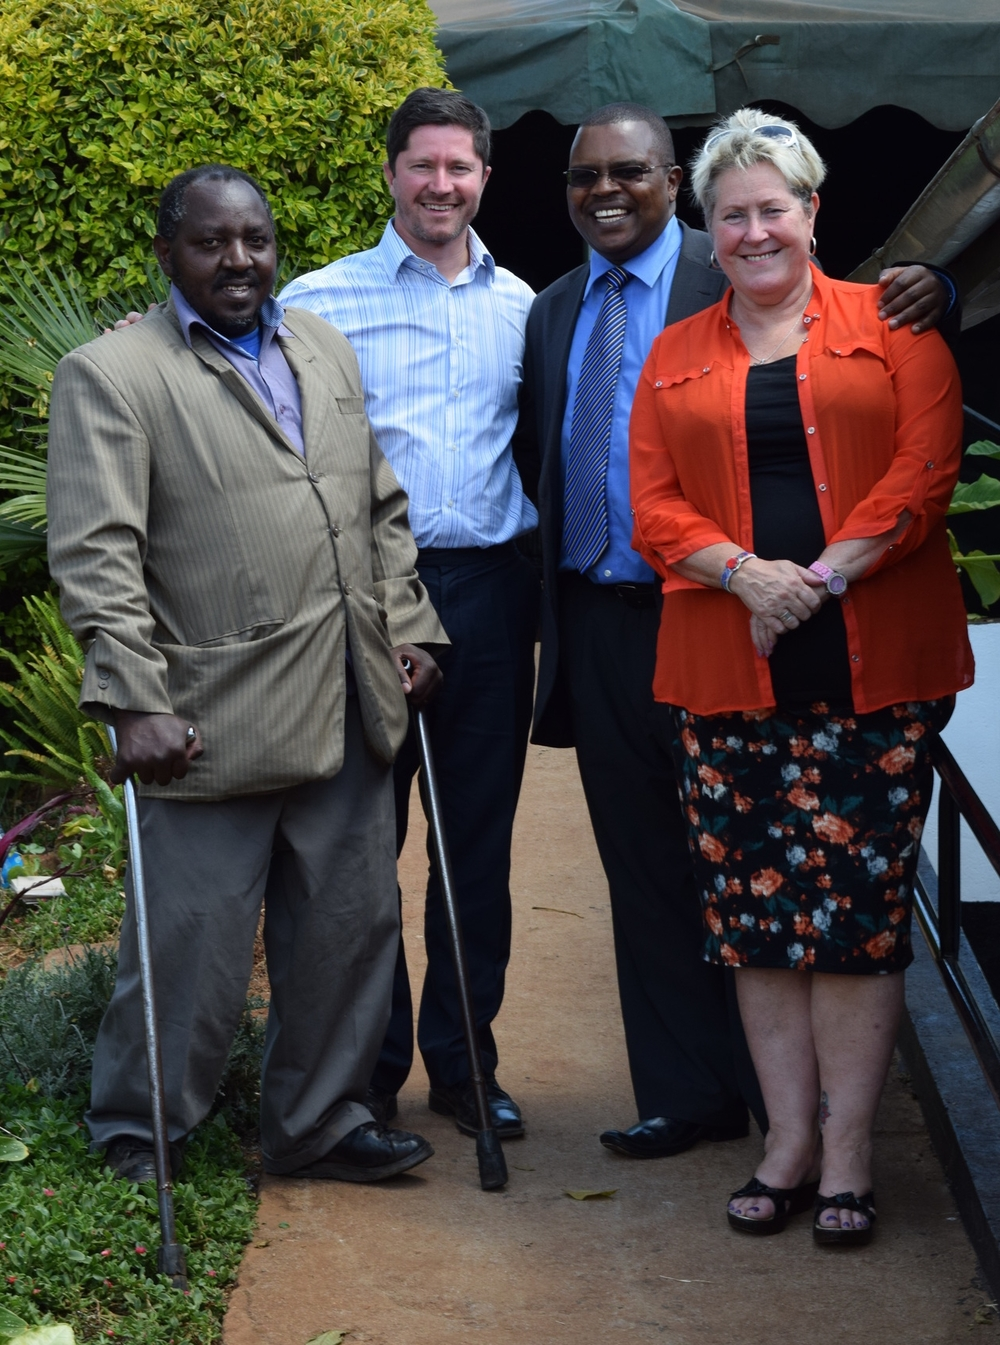 Pastor David Murray and Mrs Terry Fairfowl meet with the Hon. David Mwangi Mugo (centre right), and with the Hon. Joseph King'ori, the Nyeri County Representative for Persons with Disability, for a tour of the facilities at the Sanctuary.